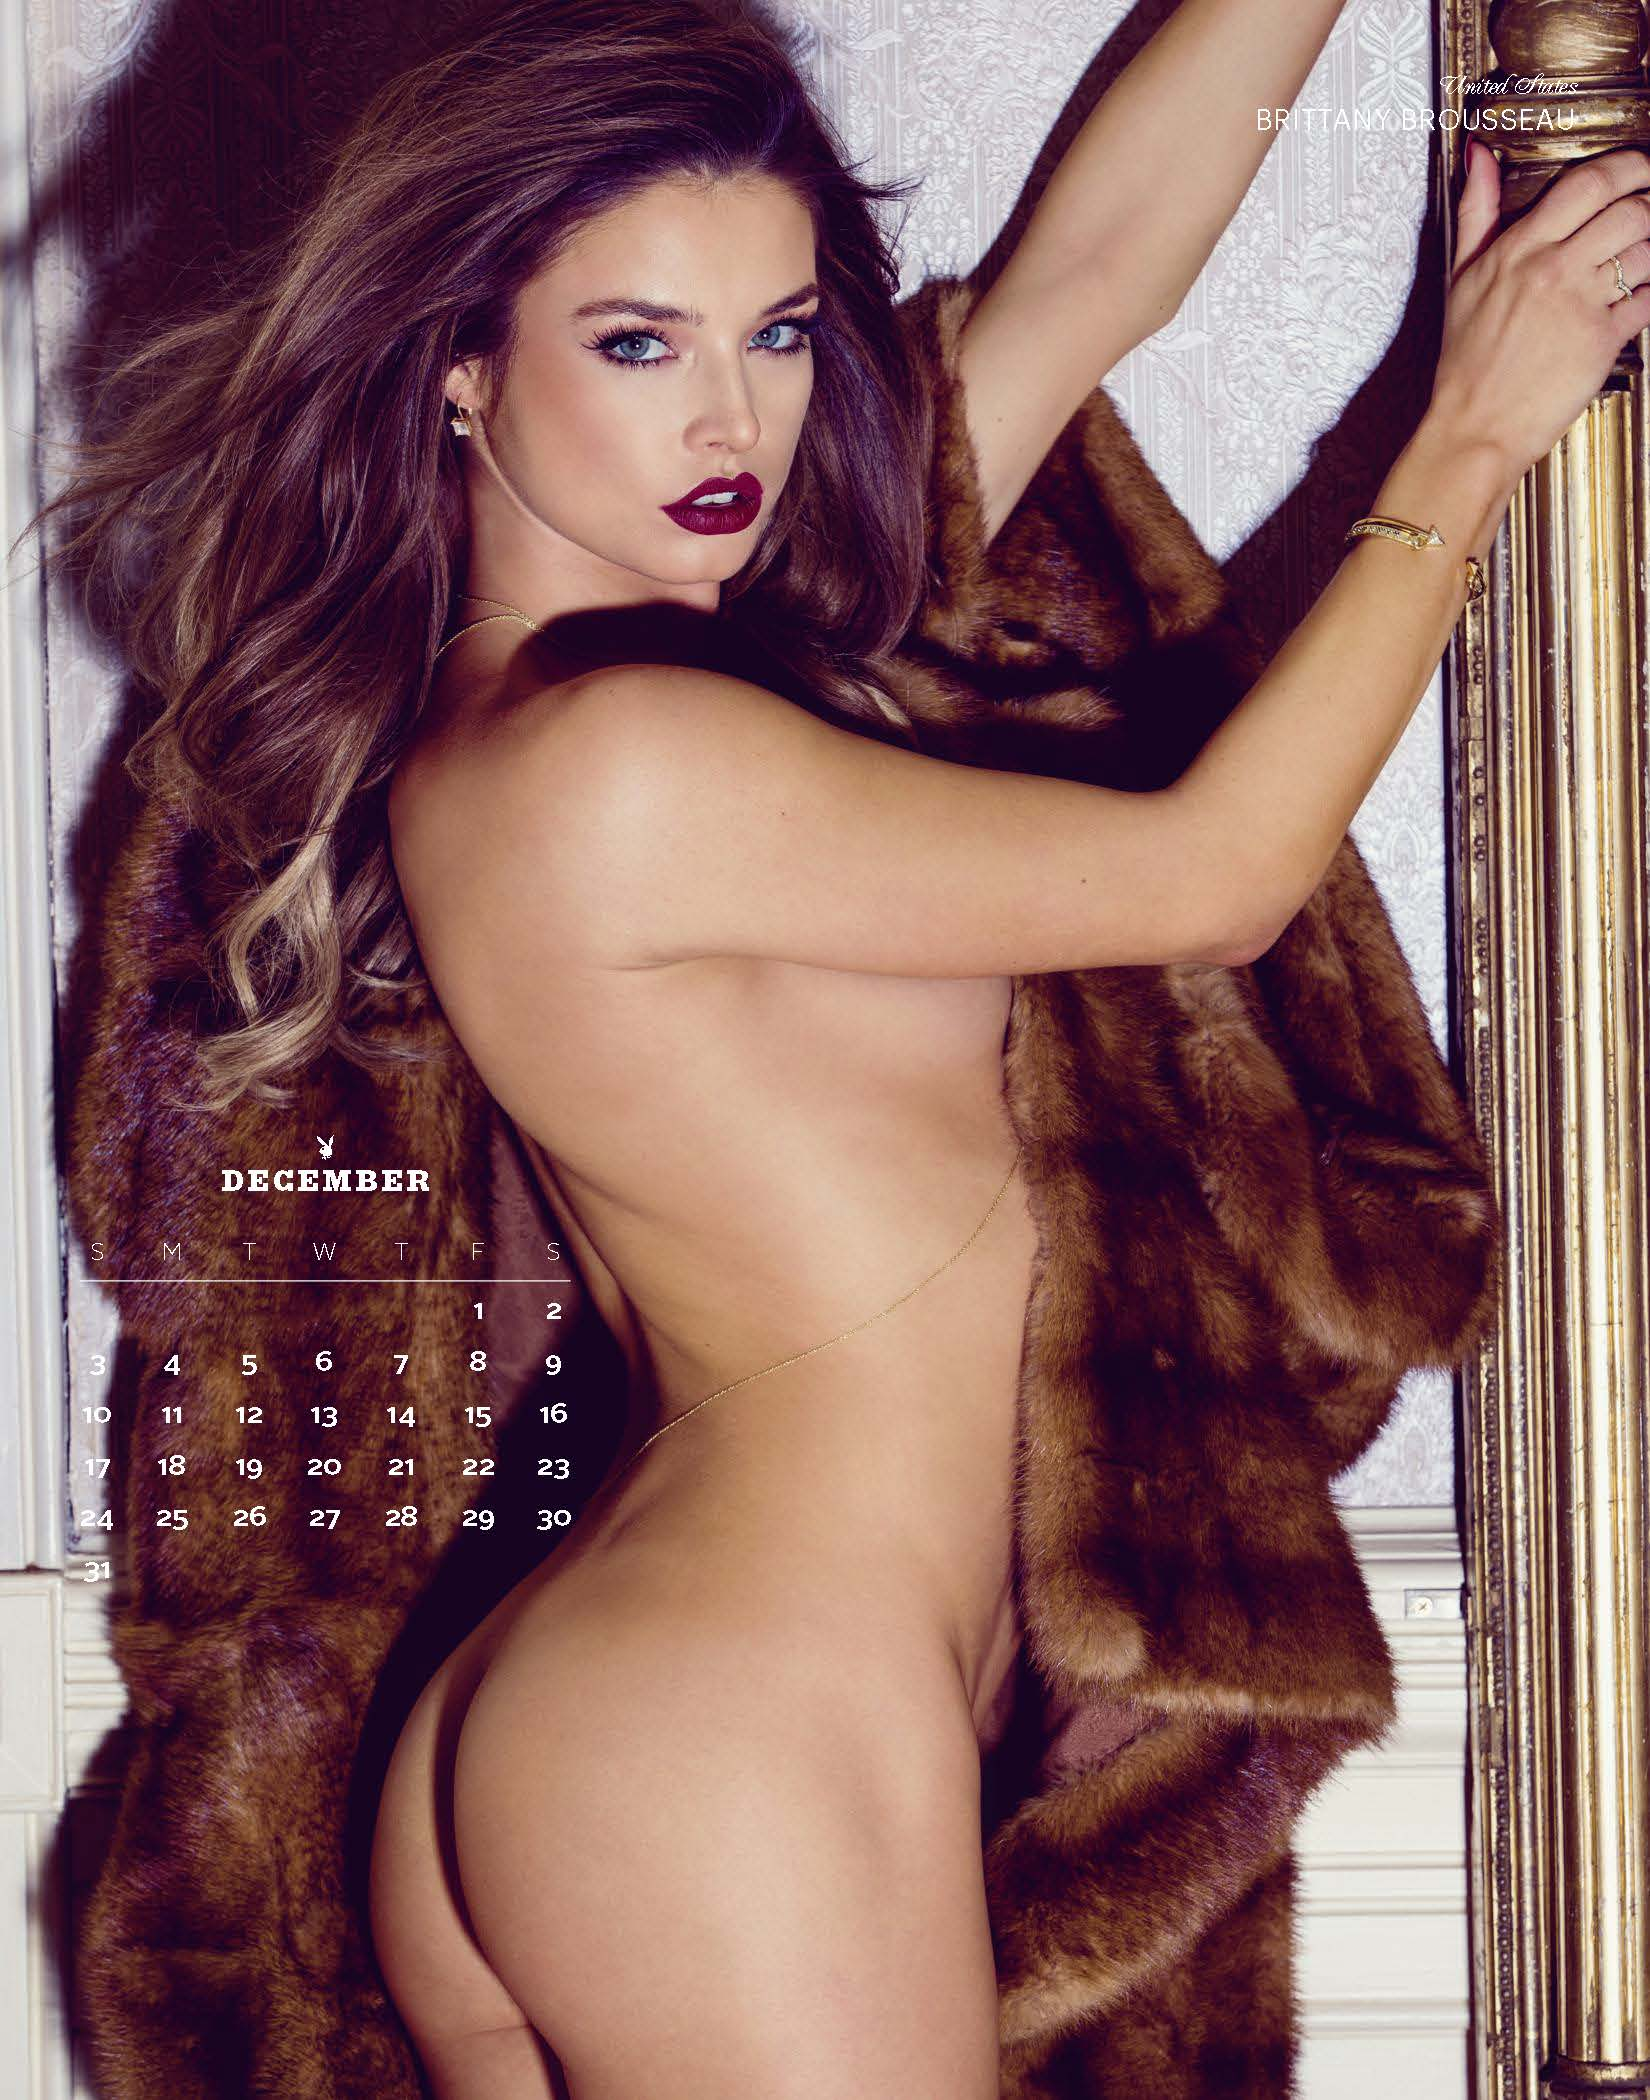 playboy-playmates-around-the-world-2017-calendar_seite_13